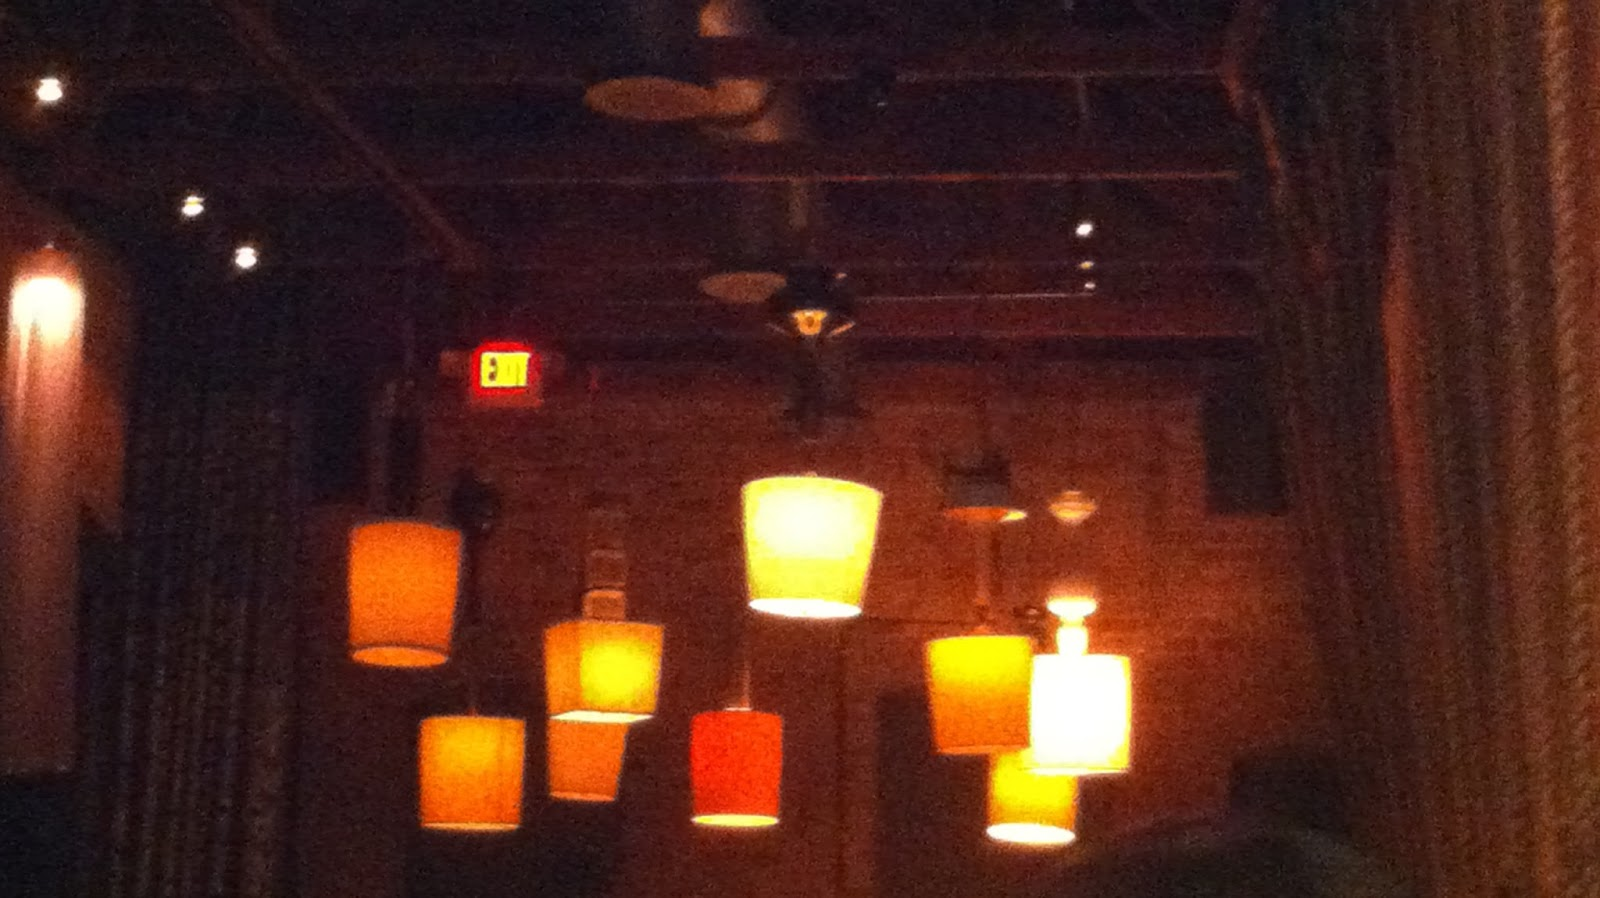 The lighting fixtures hanging from the ceiling in the hub restaurant in downtown tucson are regular old table lamps that have been installed upside down